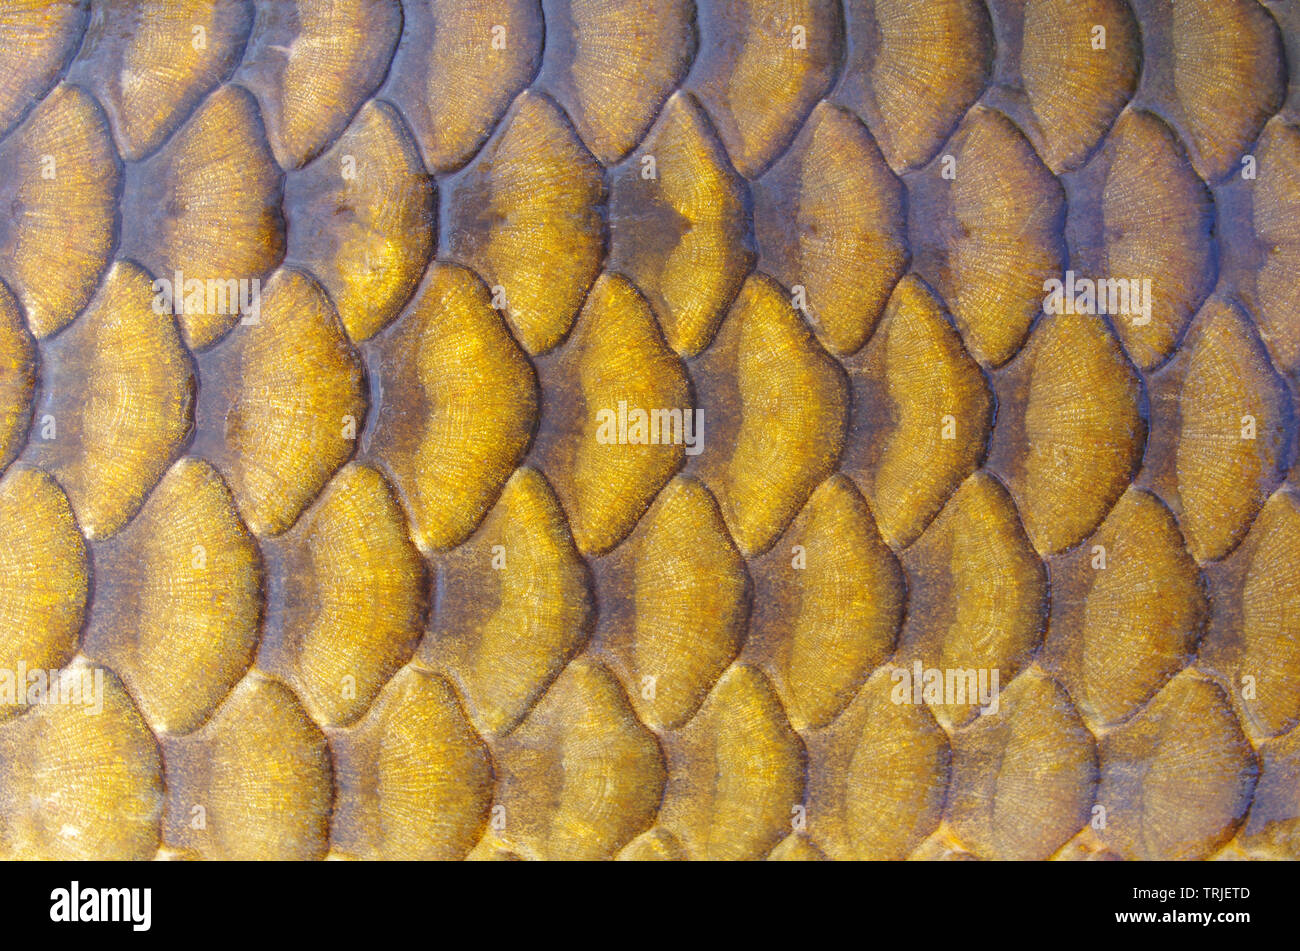 Gold carp scales background. Close-up on carp scales - Stock Image